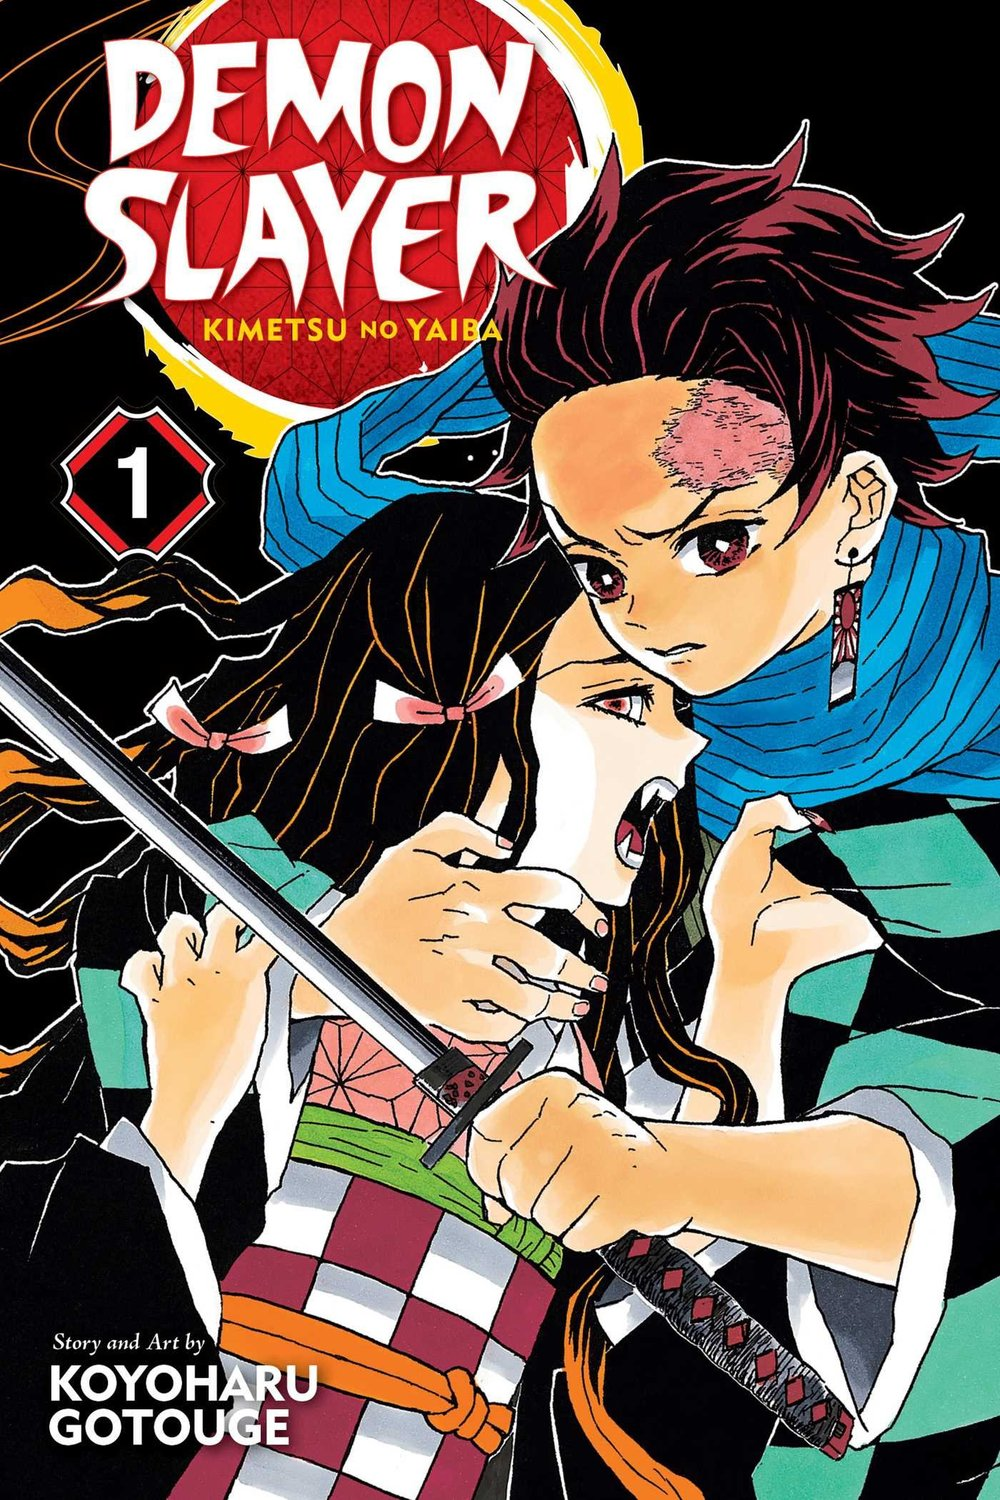 Demon Slayer Kimetsu no Yaiba vol. 1.jpg